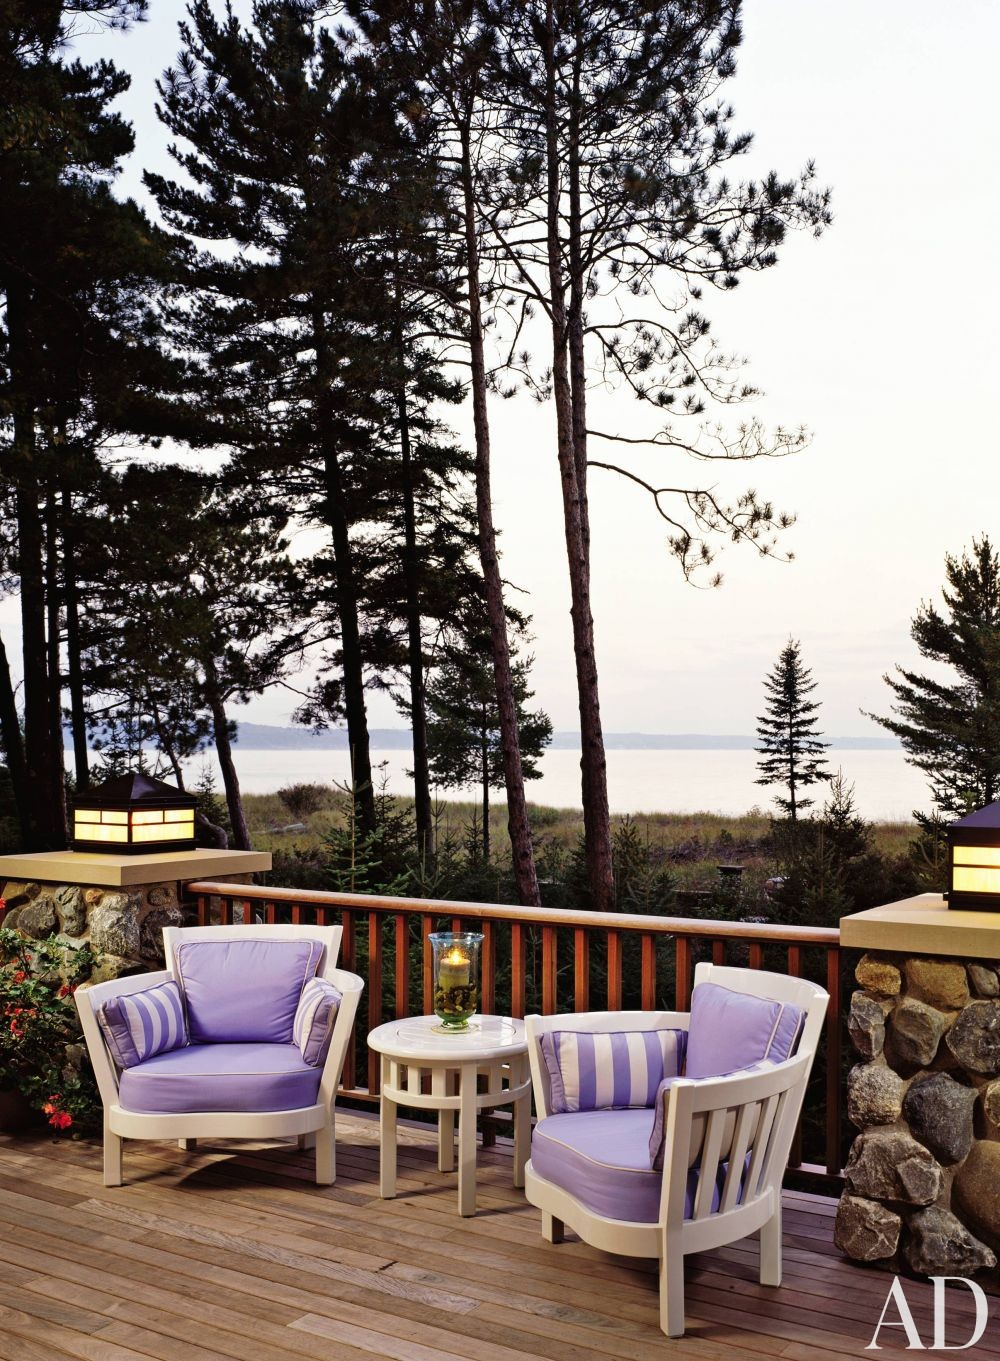 Rustic Outdoor Space By Lawrence Boeder AD DesignFile Home Decorating Pho